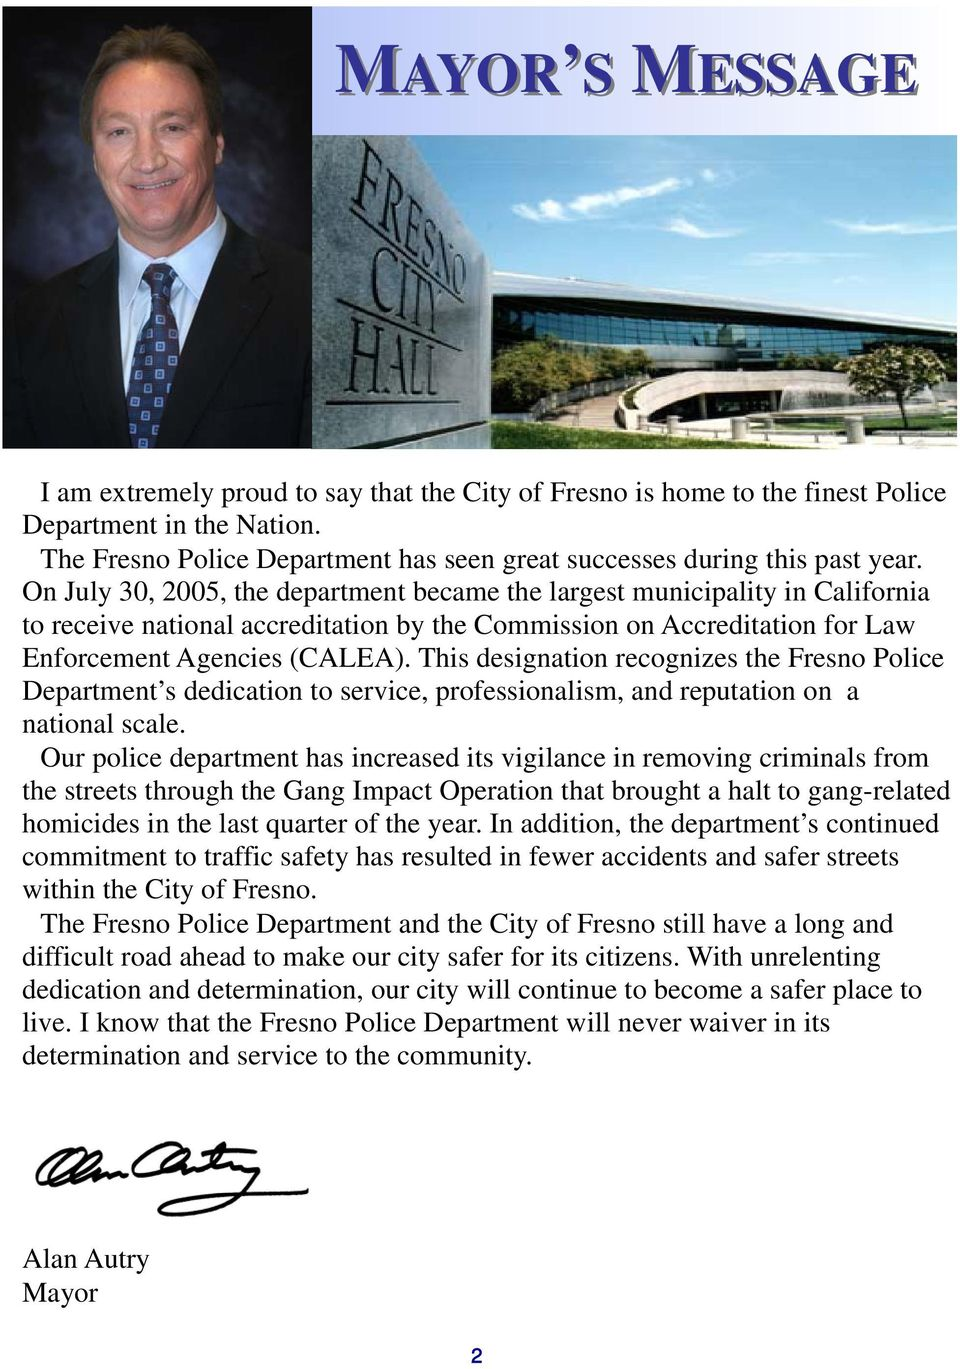 On July 30, 2005, the department became the largest municipality in California to receive national accreditation by the Commission on Accreditation for Law Enforcement Agencies (CALEA).